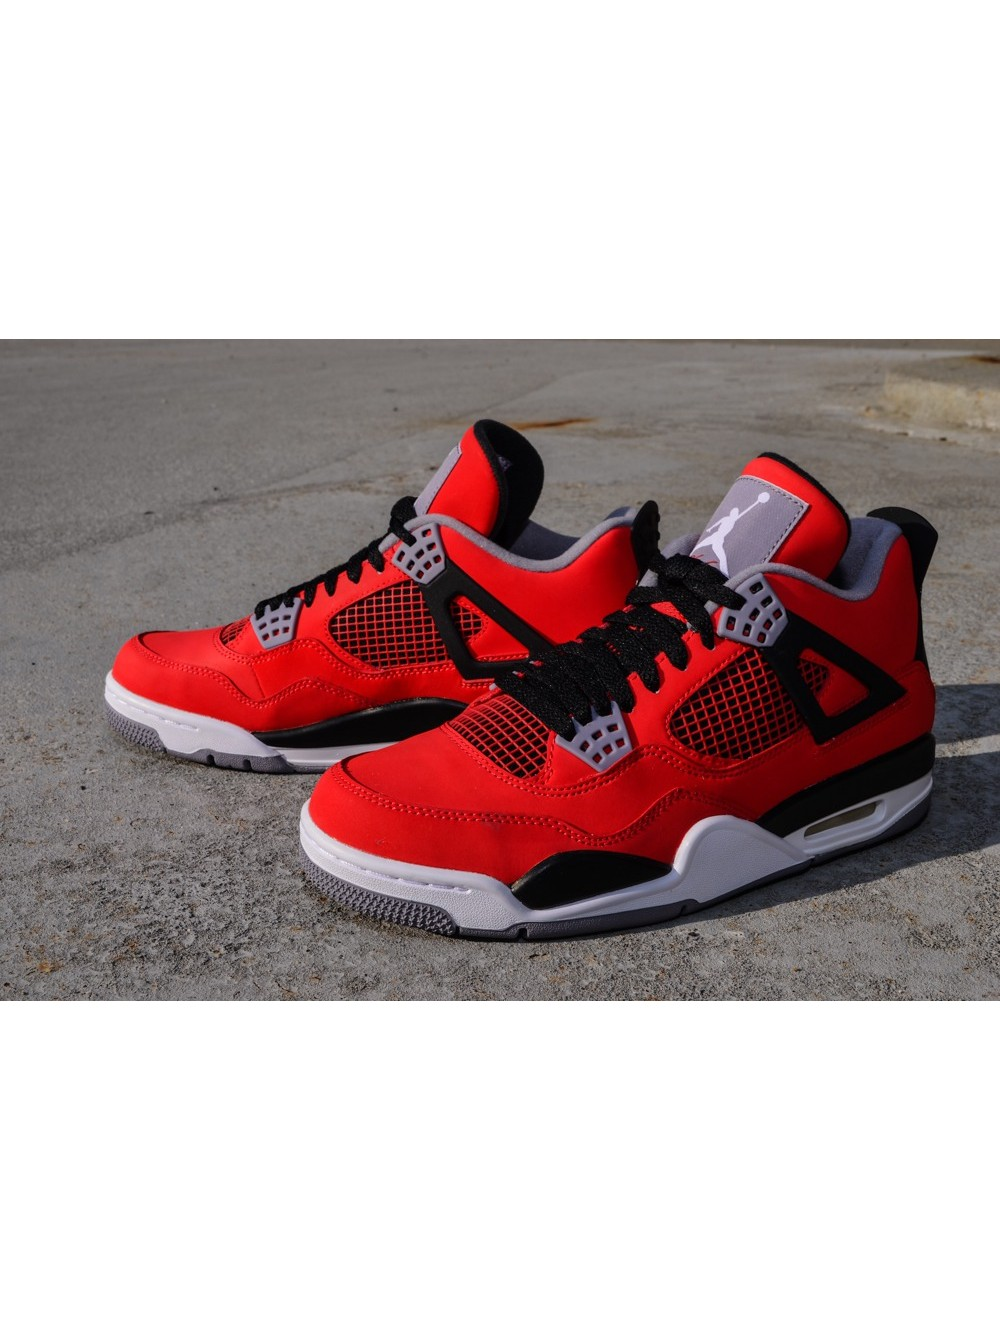 12fac1fa Nike Air Jordan Retro 4 IV RedBlackGrey